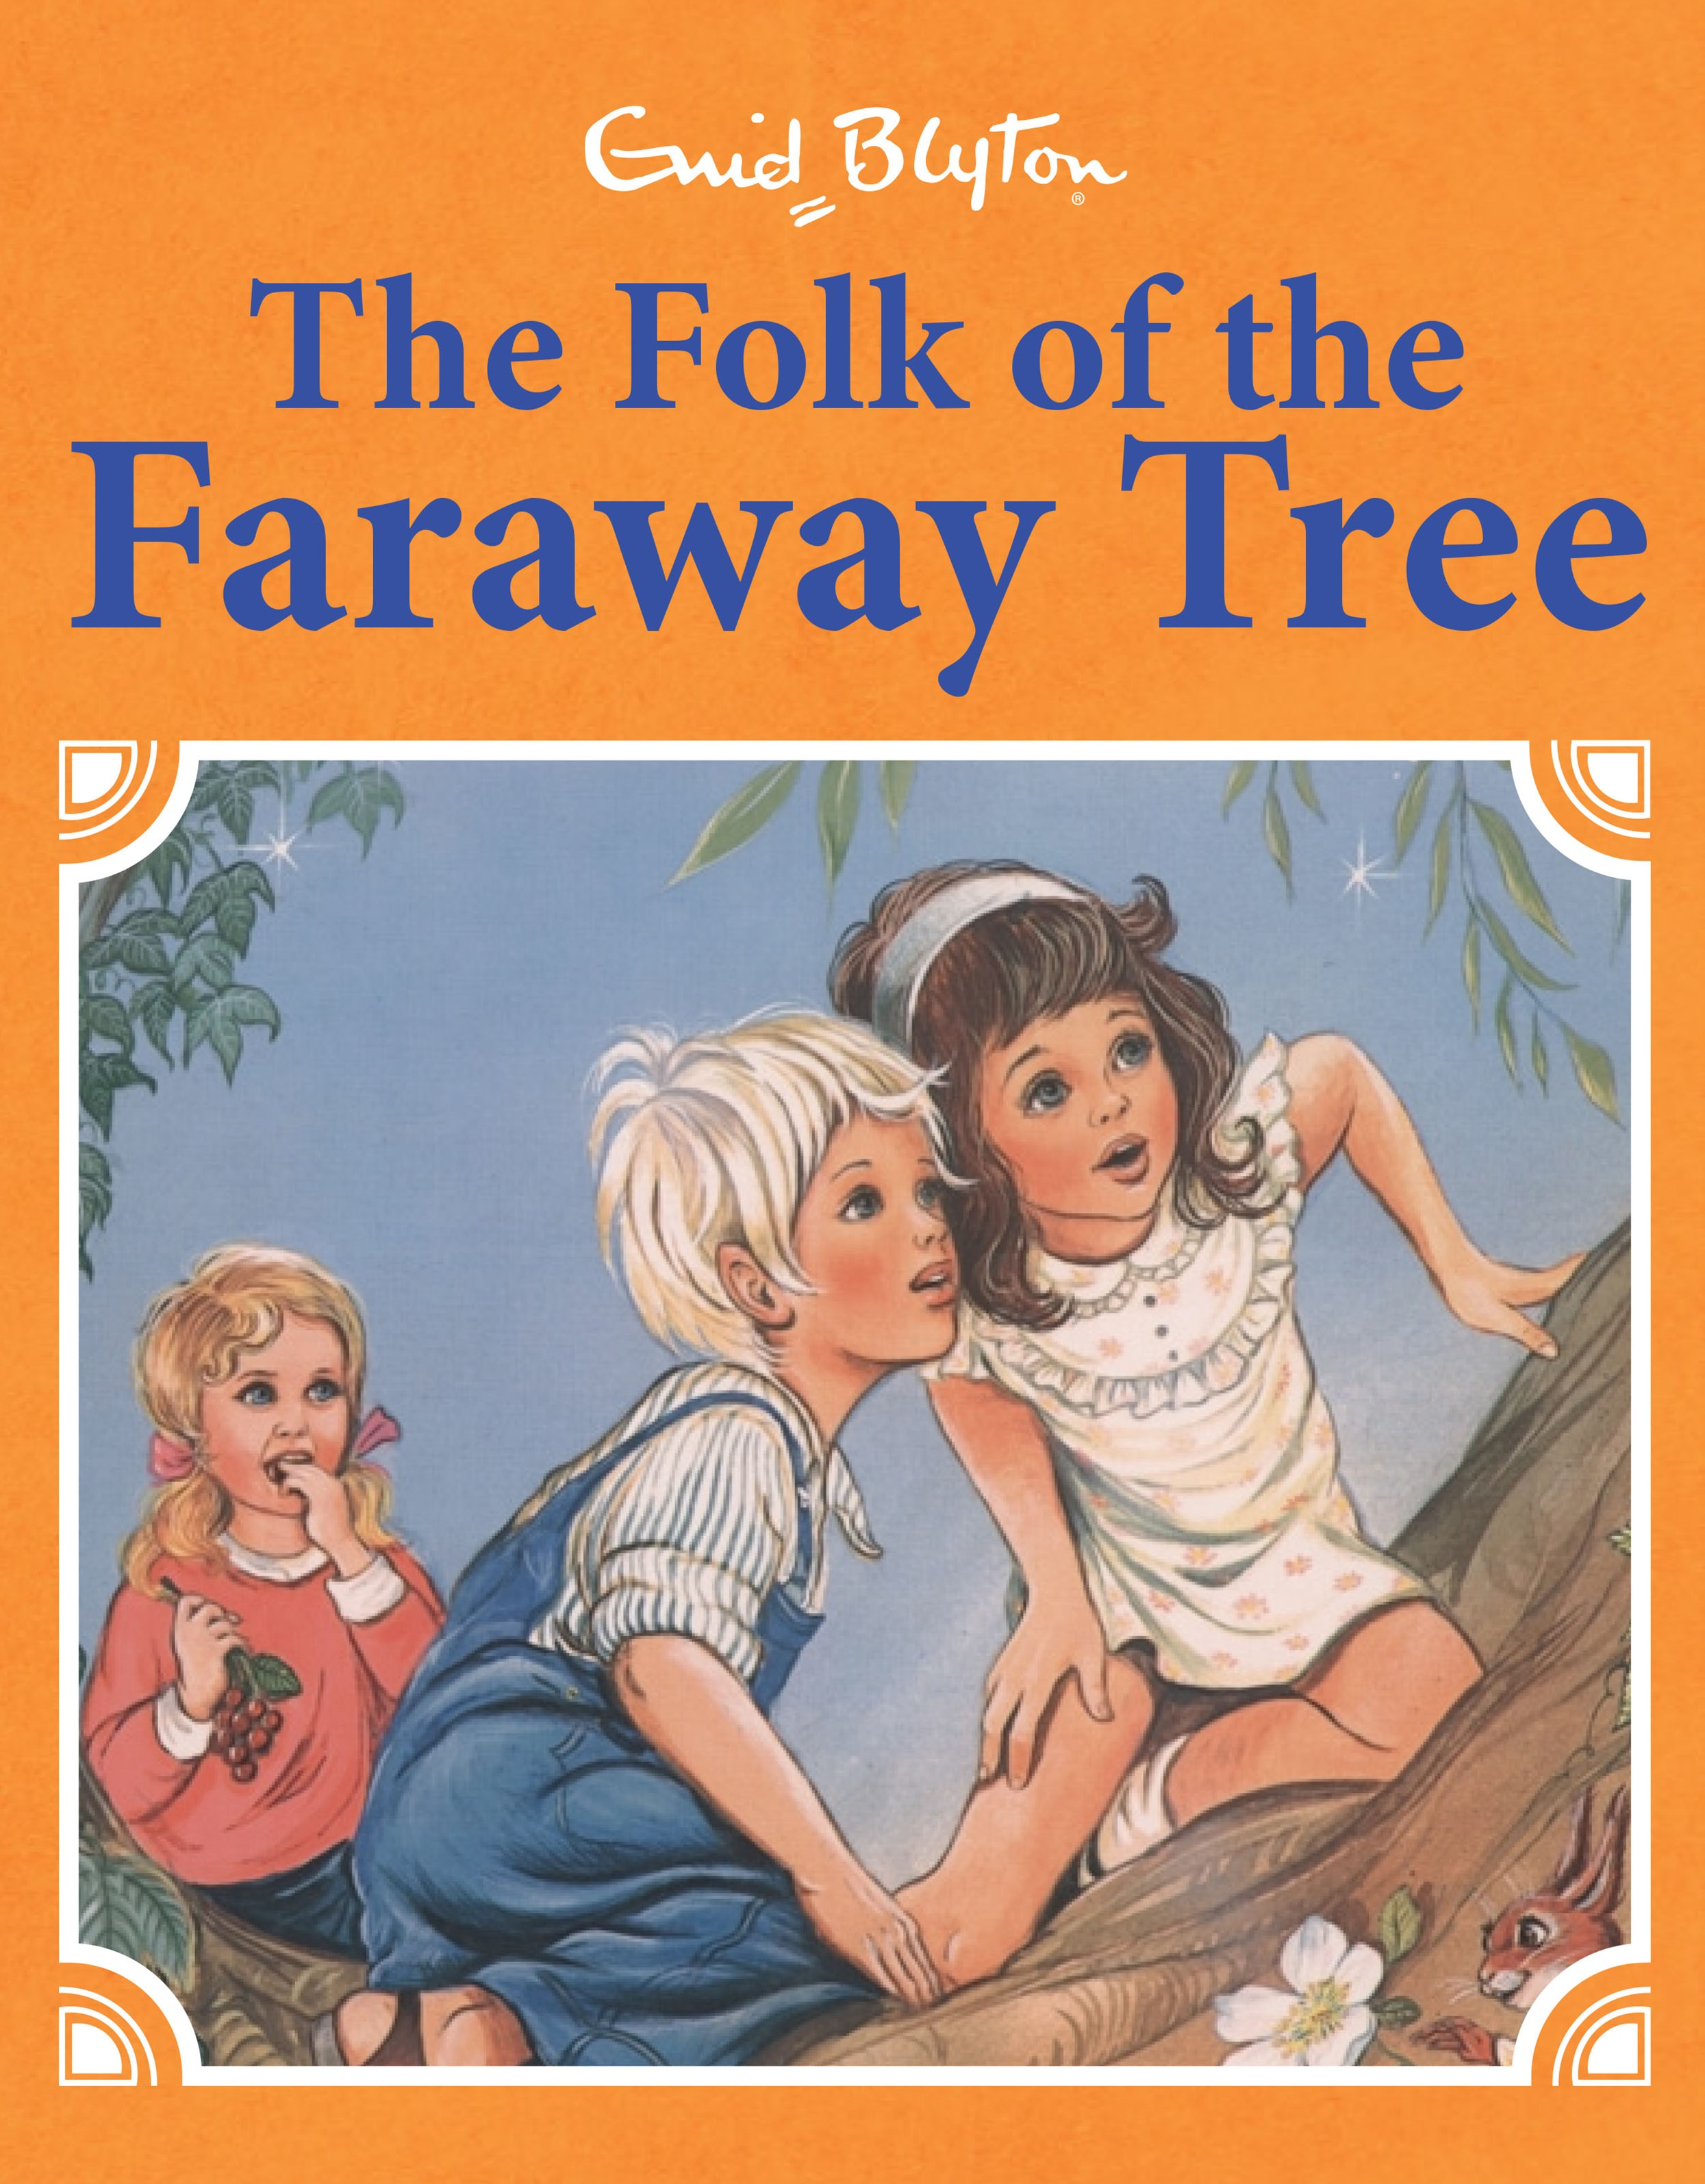 The Folk of the Faraway Tree Retro Illustrated